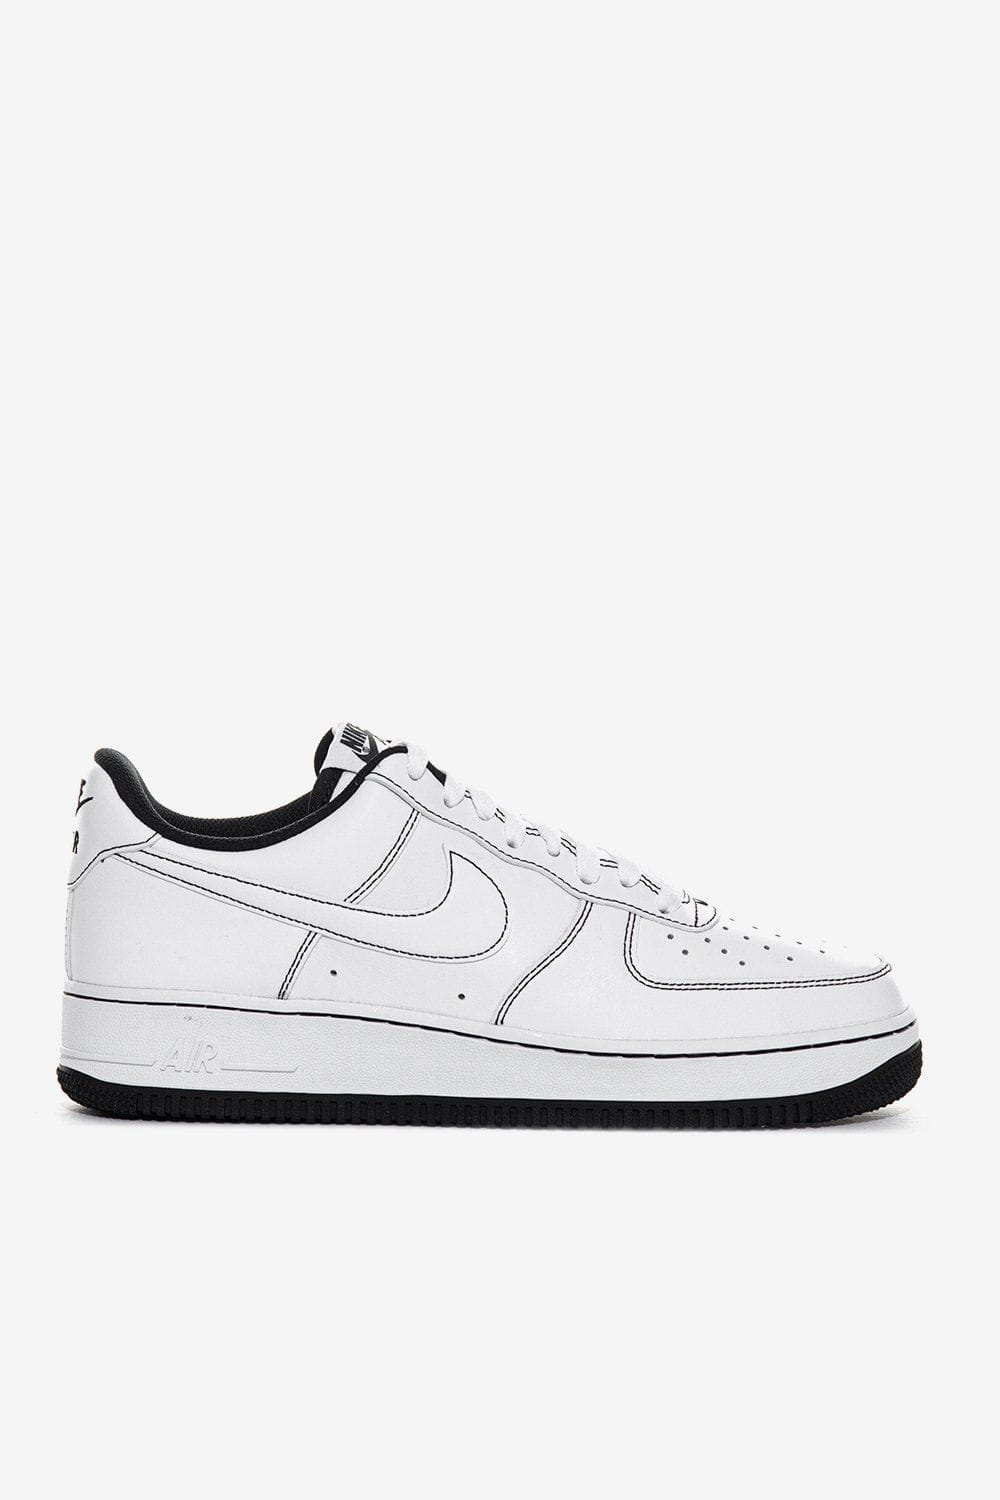 Nike Footwear Air Force 1 '07 White Black